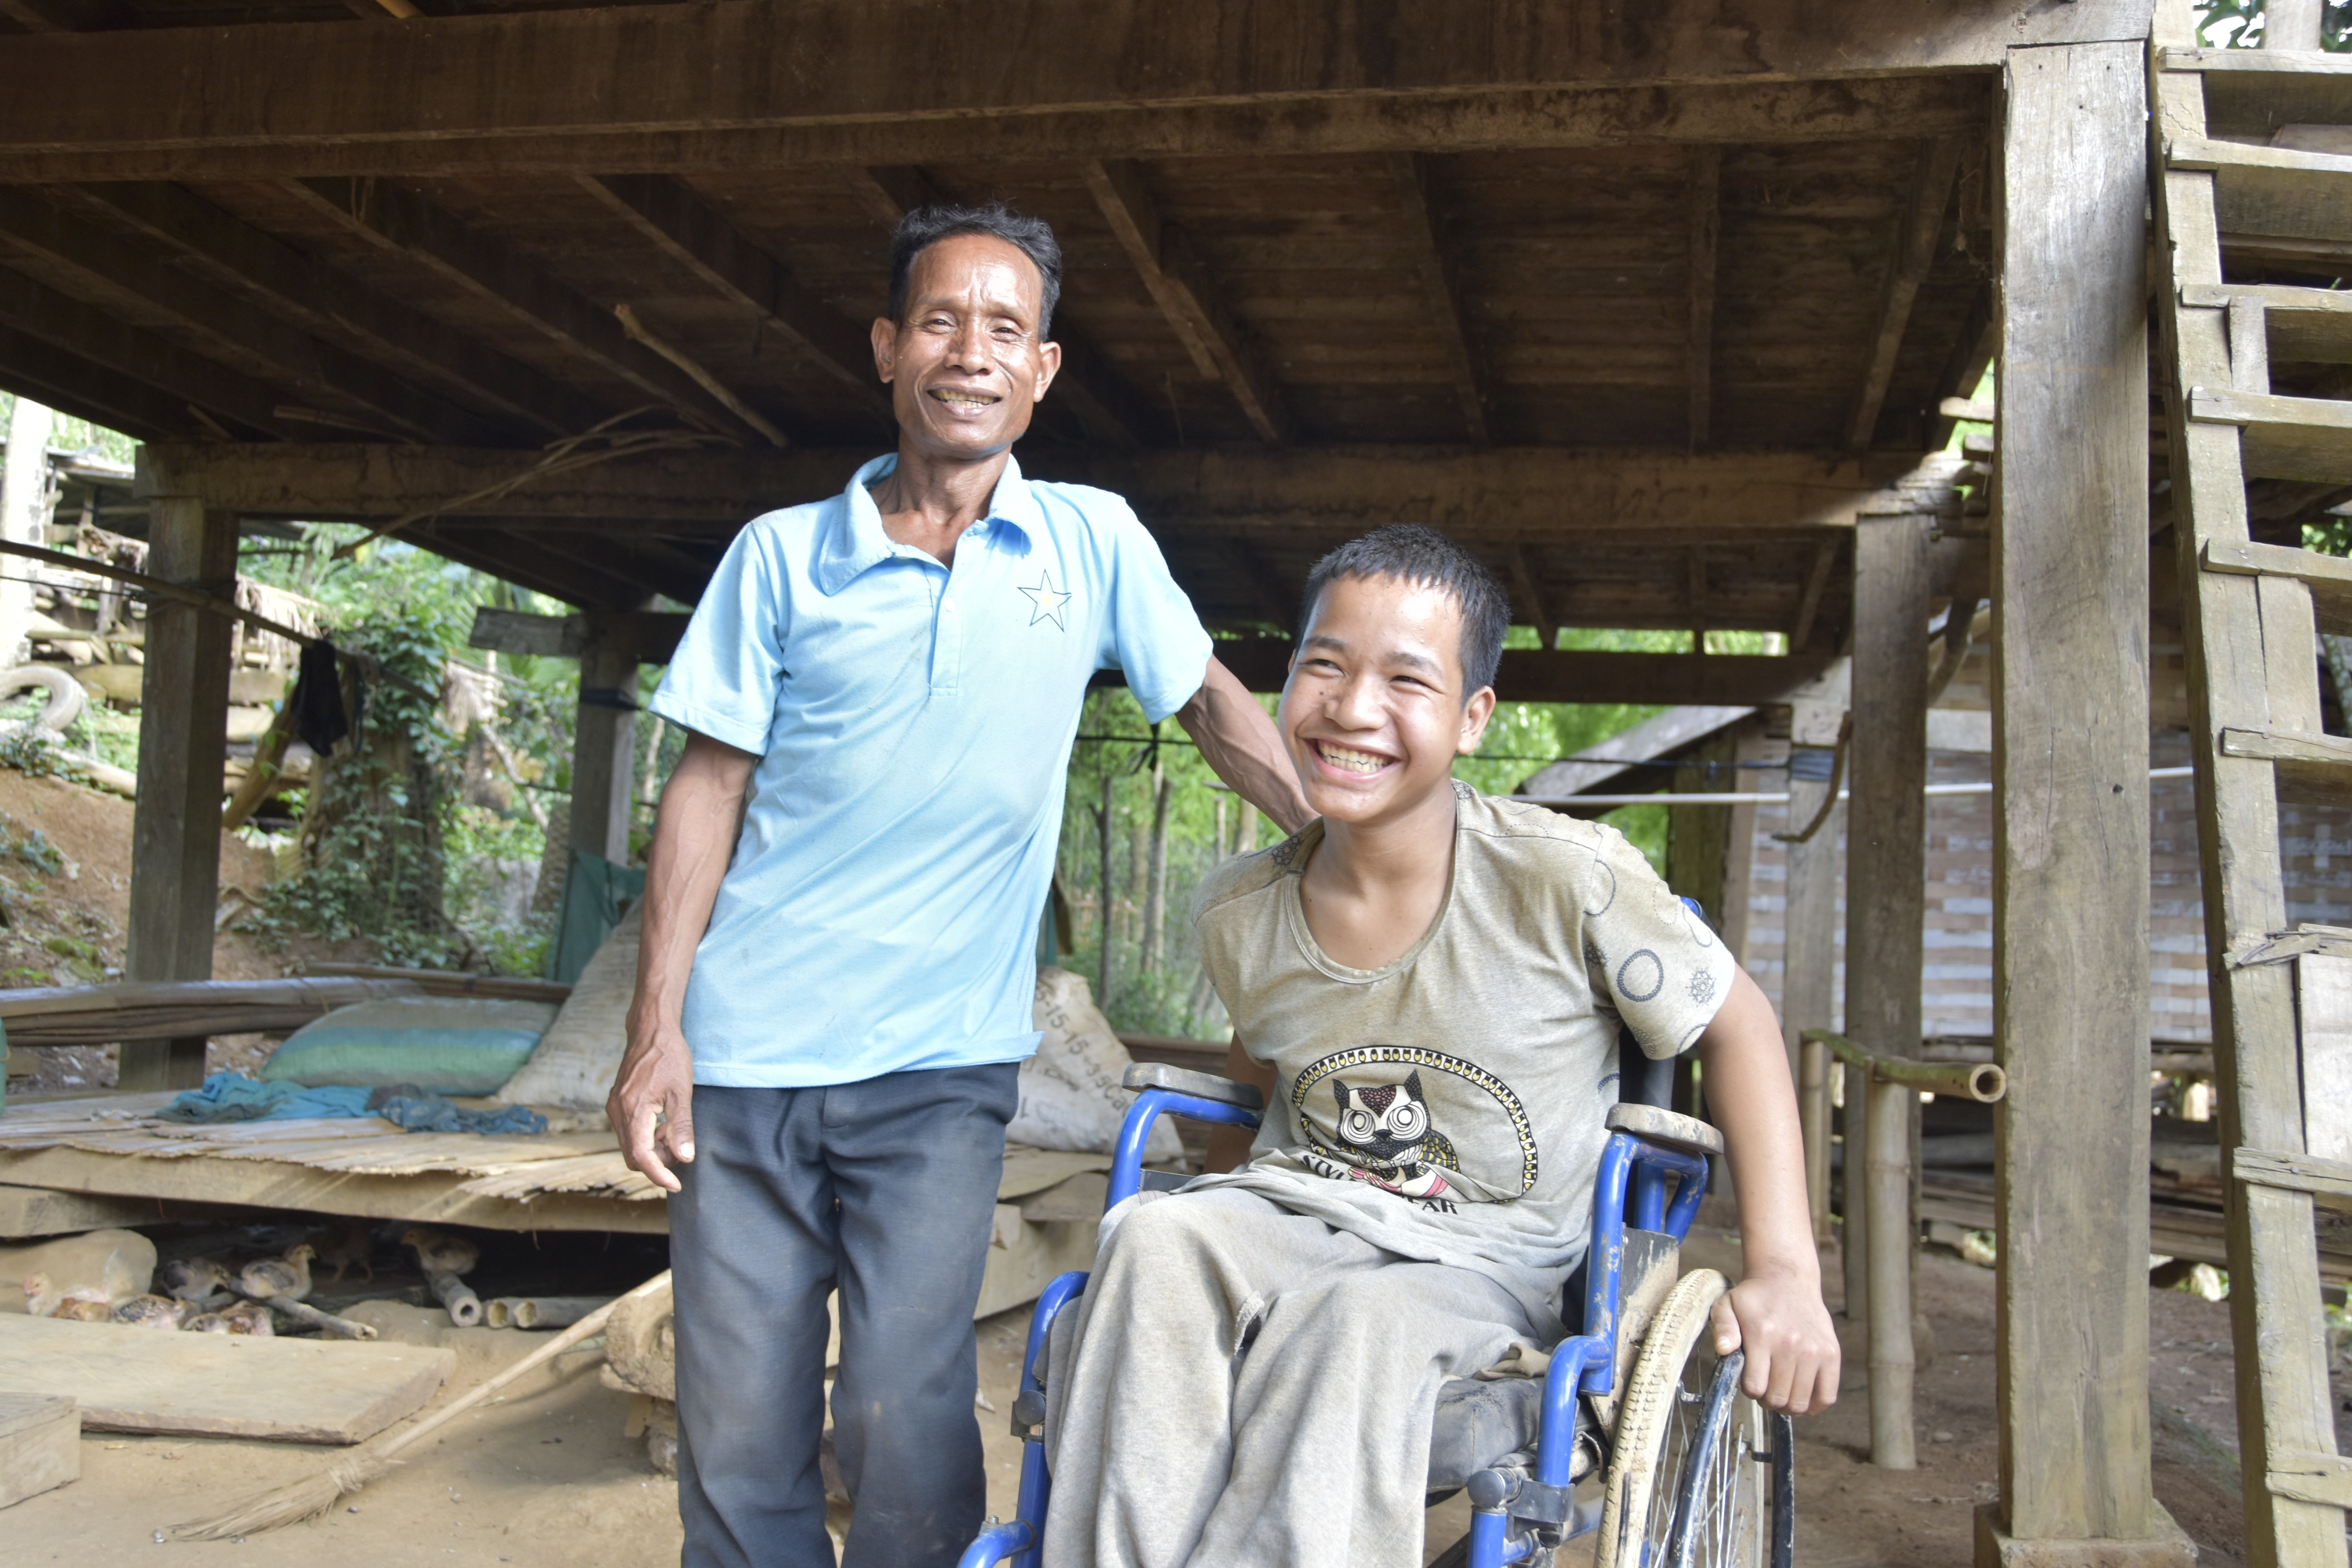 When Nak fell ill, his father Nid helped him get back into education through a Plan International programme.